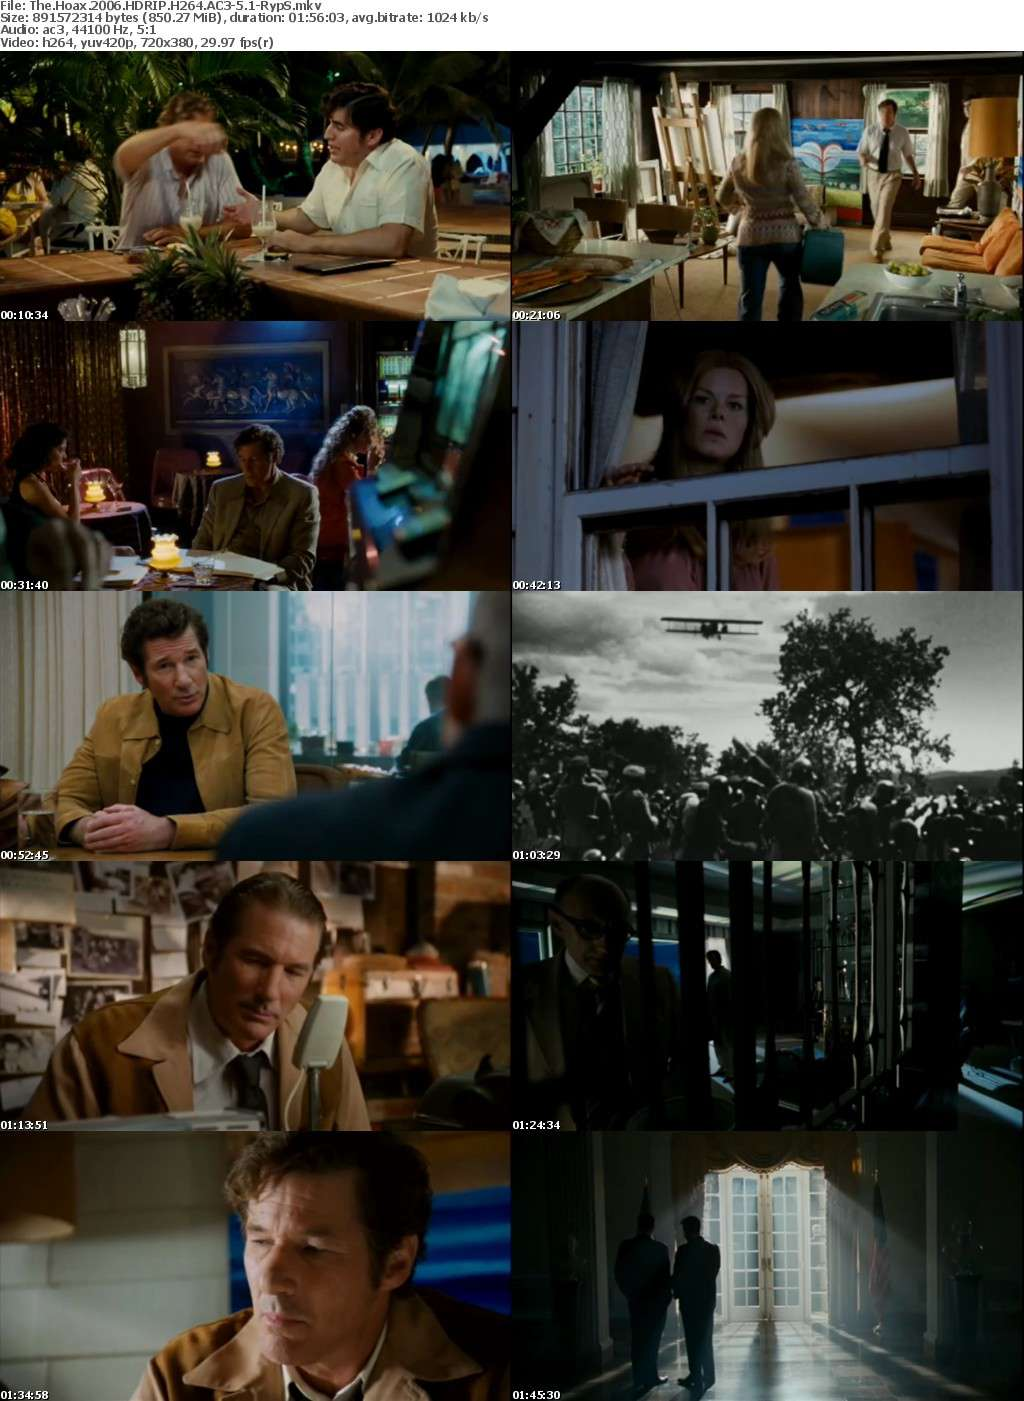 The Hoax 2006 HDRIP H264 AC3-5 1-RypS